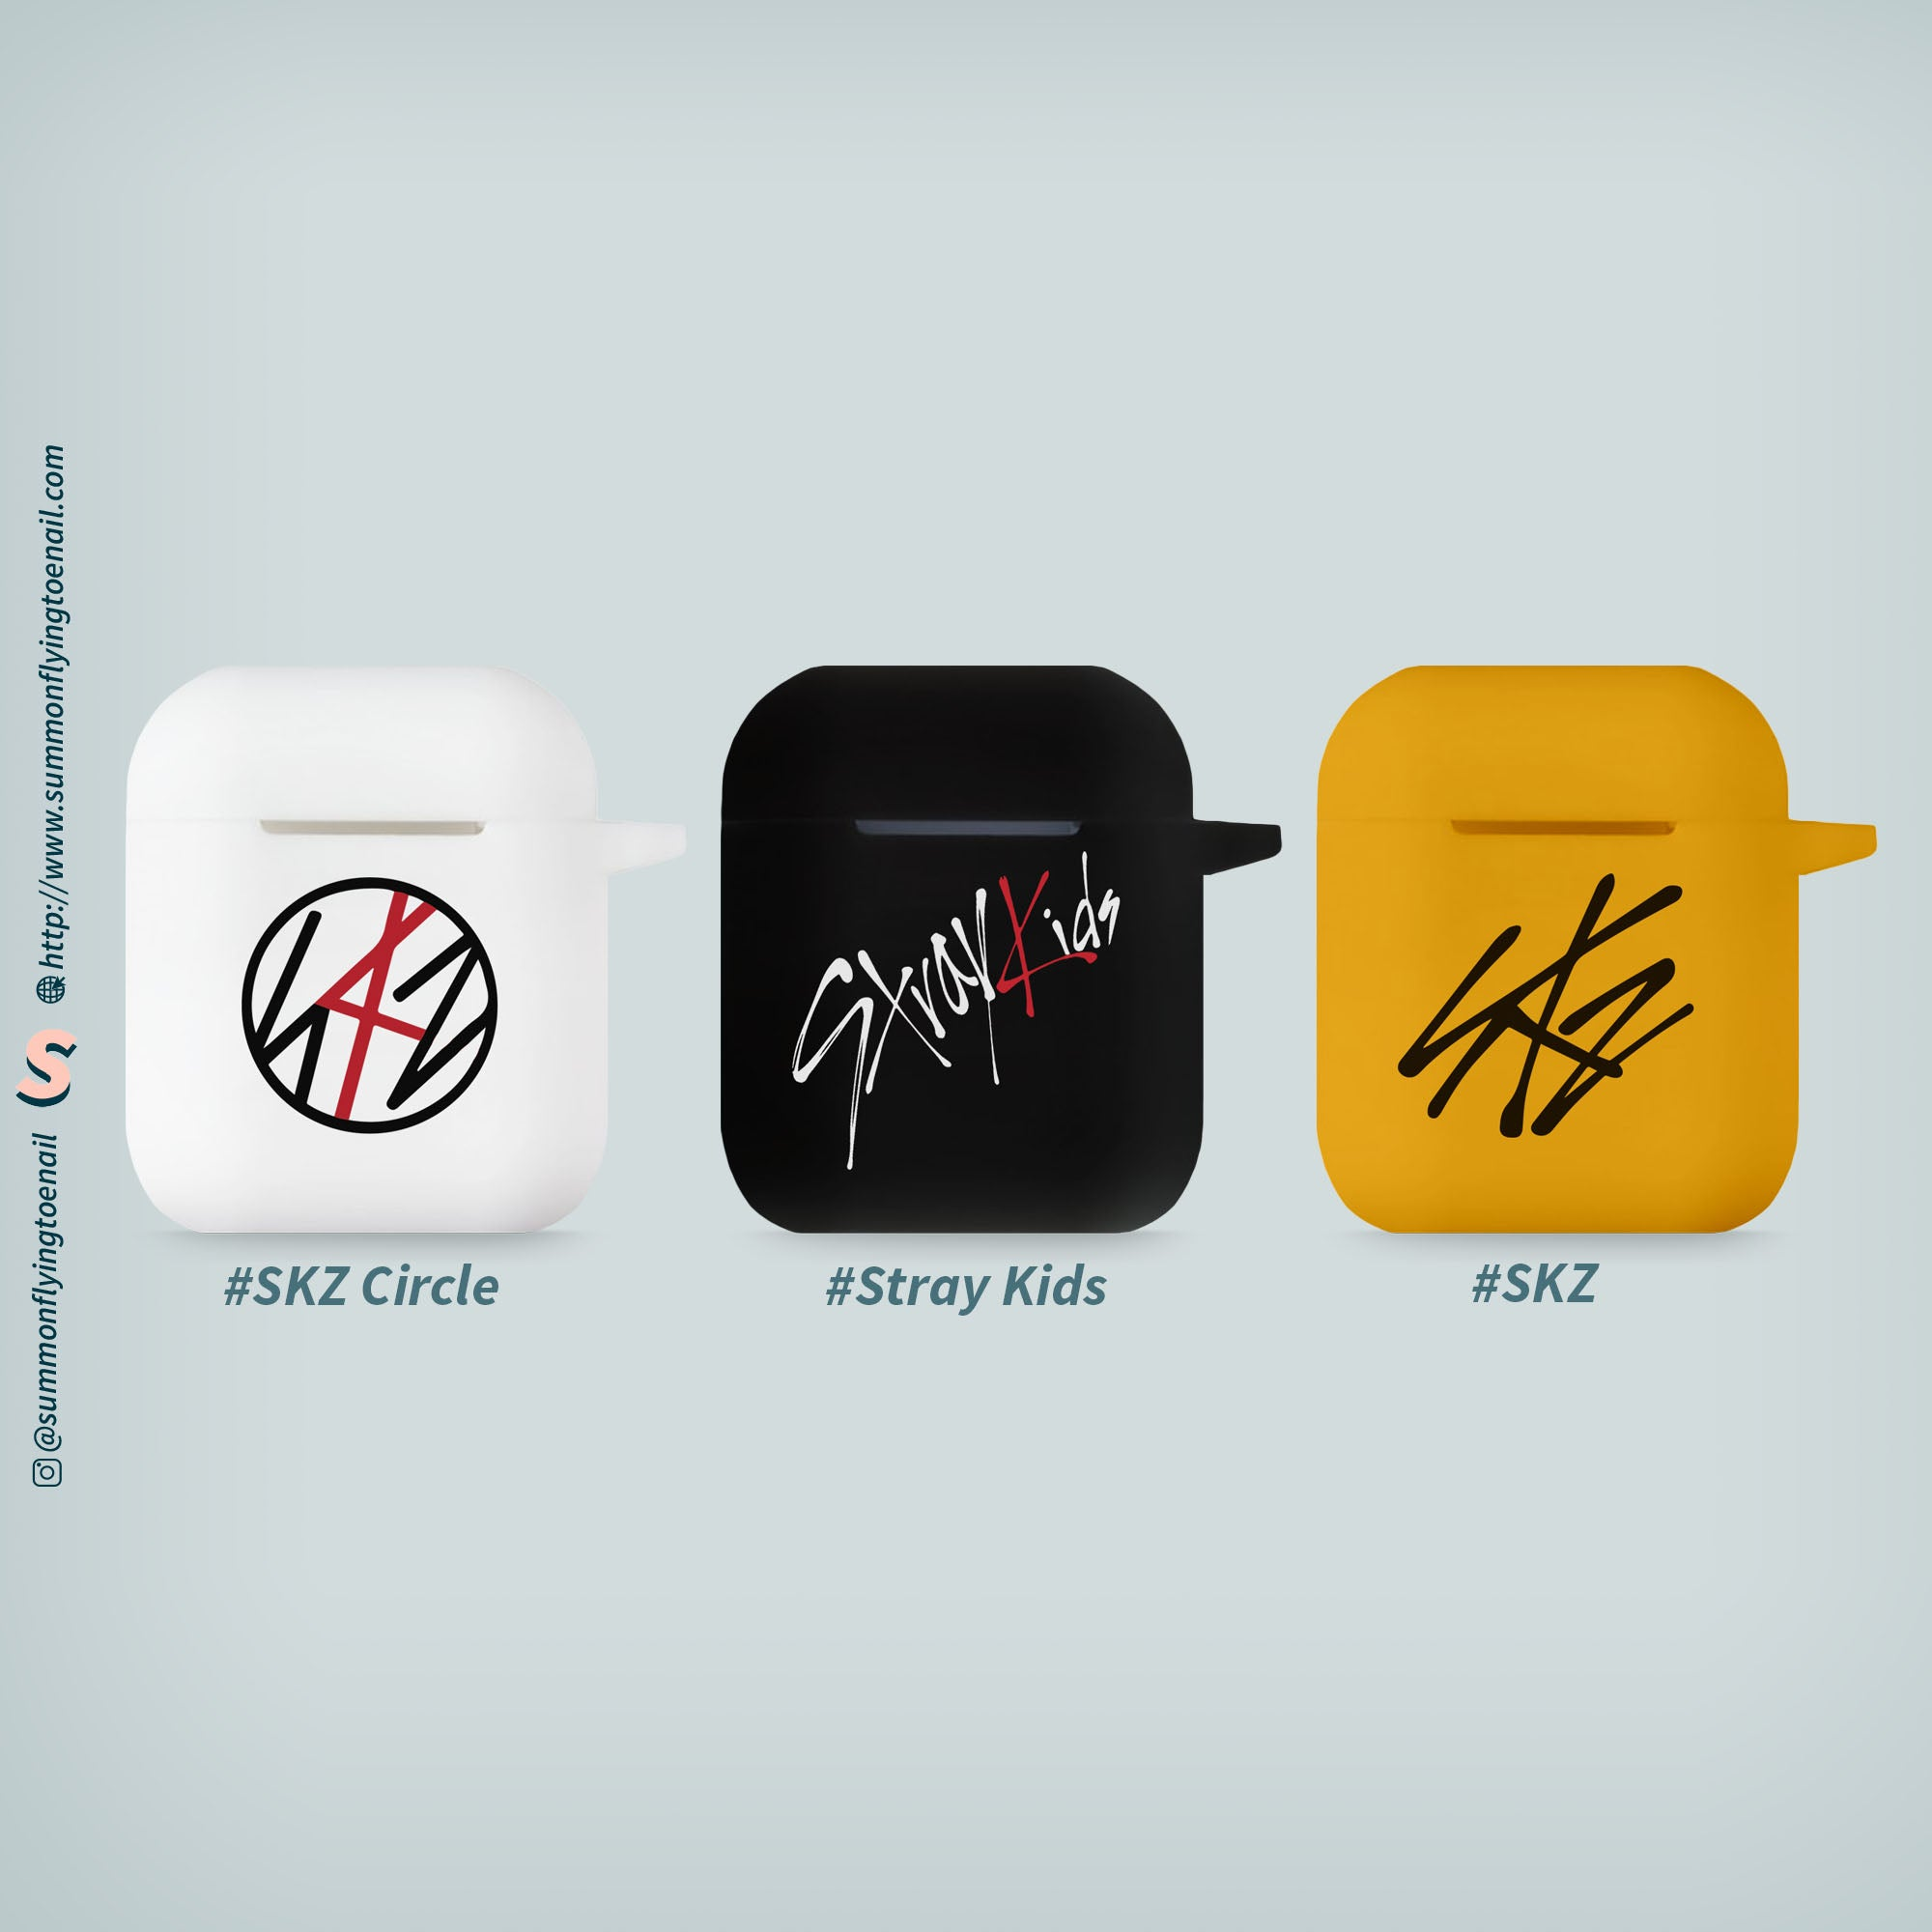 Stray Kids Logo Kpop Airpods 1 Airpods 2 Airpods Pro Case Summonflyingtoenail Stray kids facts stray kids (스트레이 키즈) is a south korean boy group under jyp entertainment. stray kids logo kpop airpods 1 airpods 2 airpods pro case